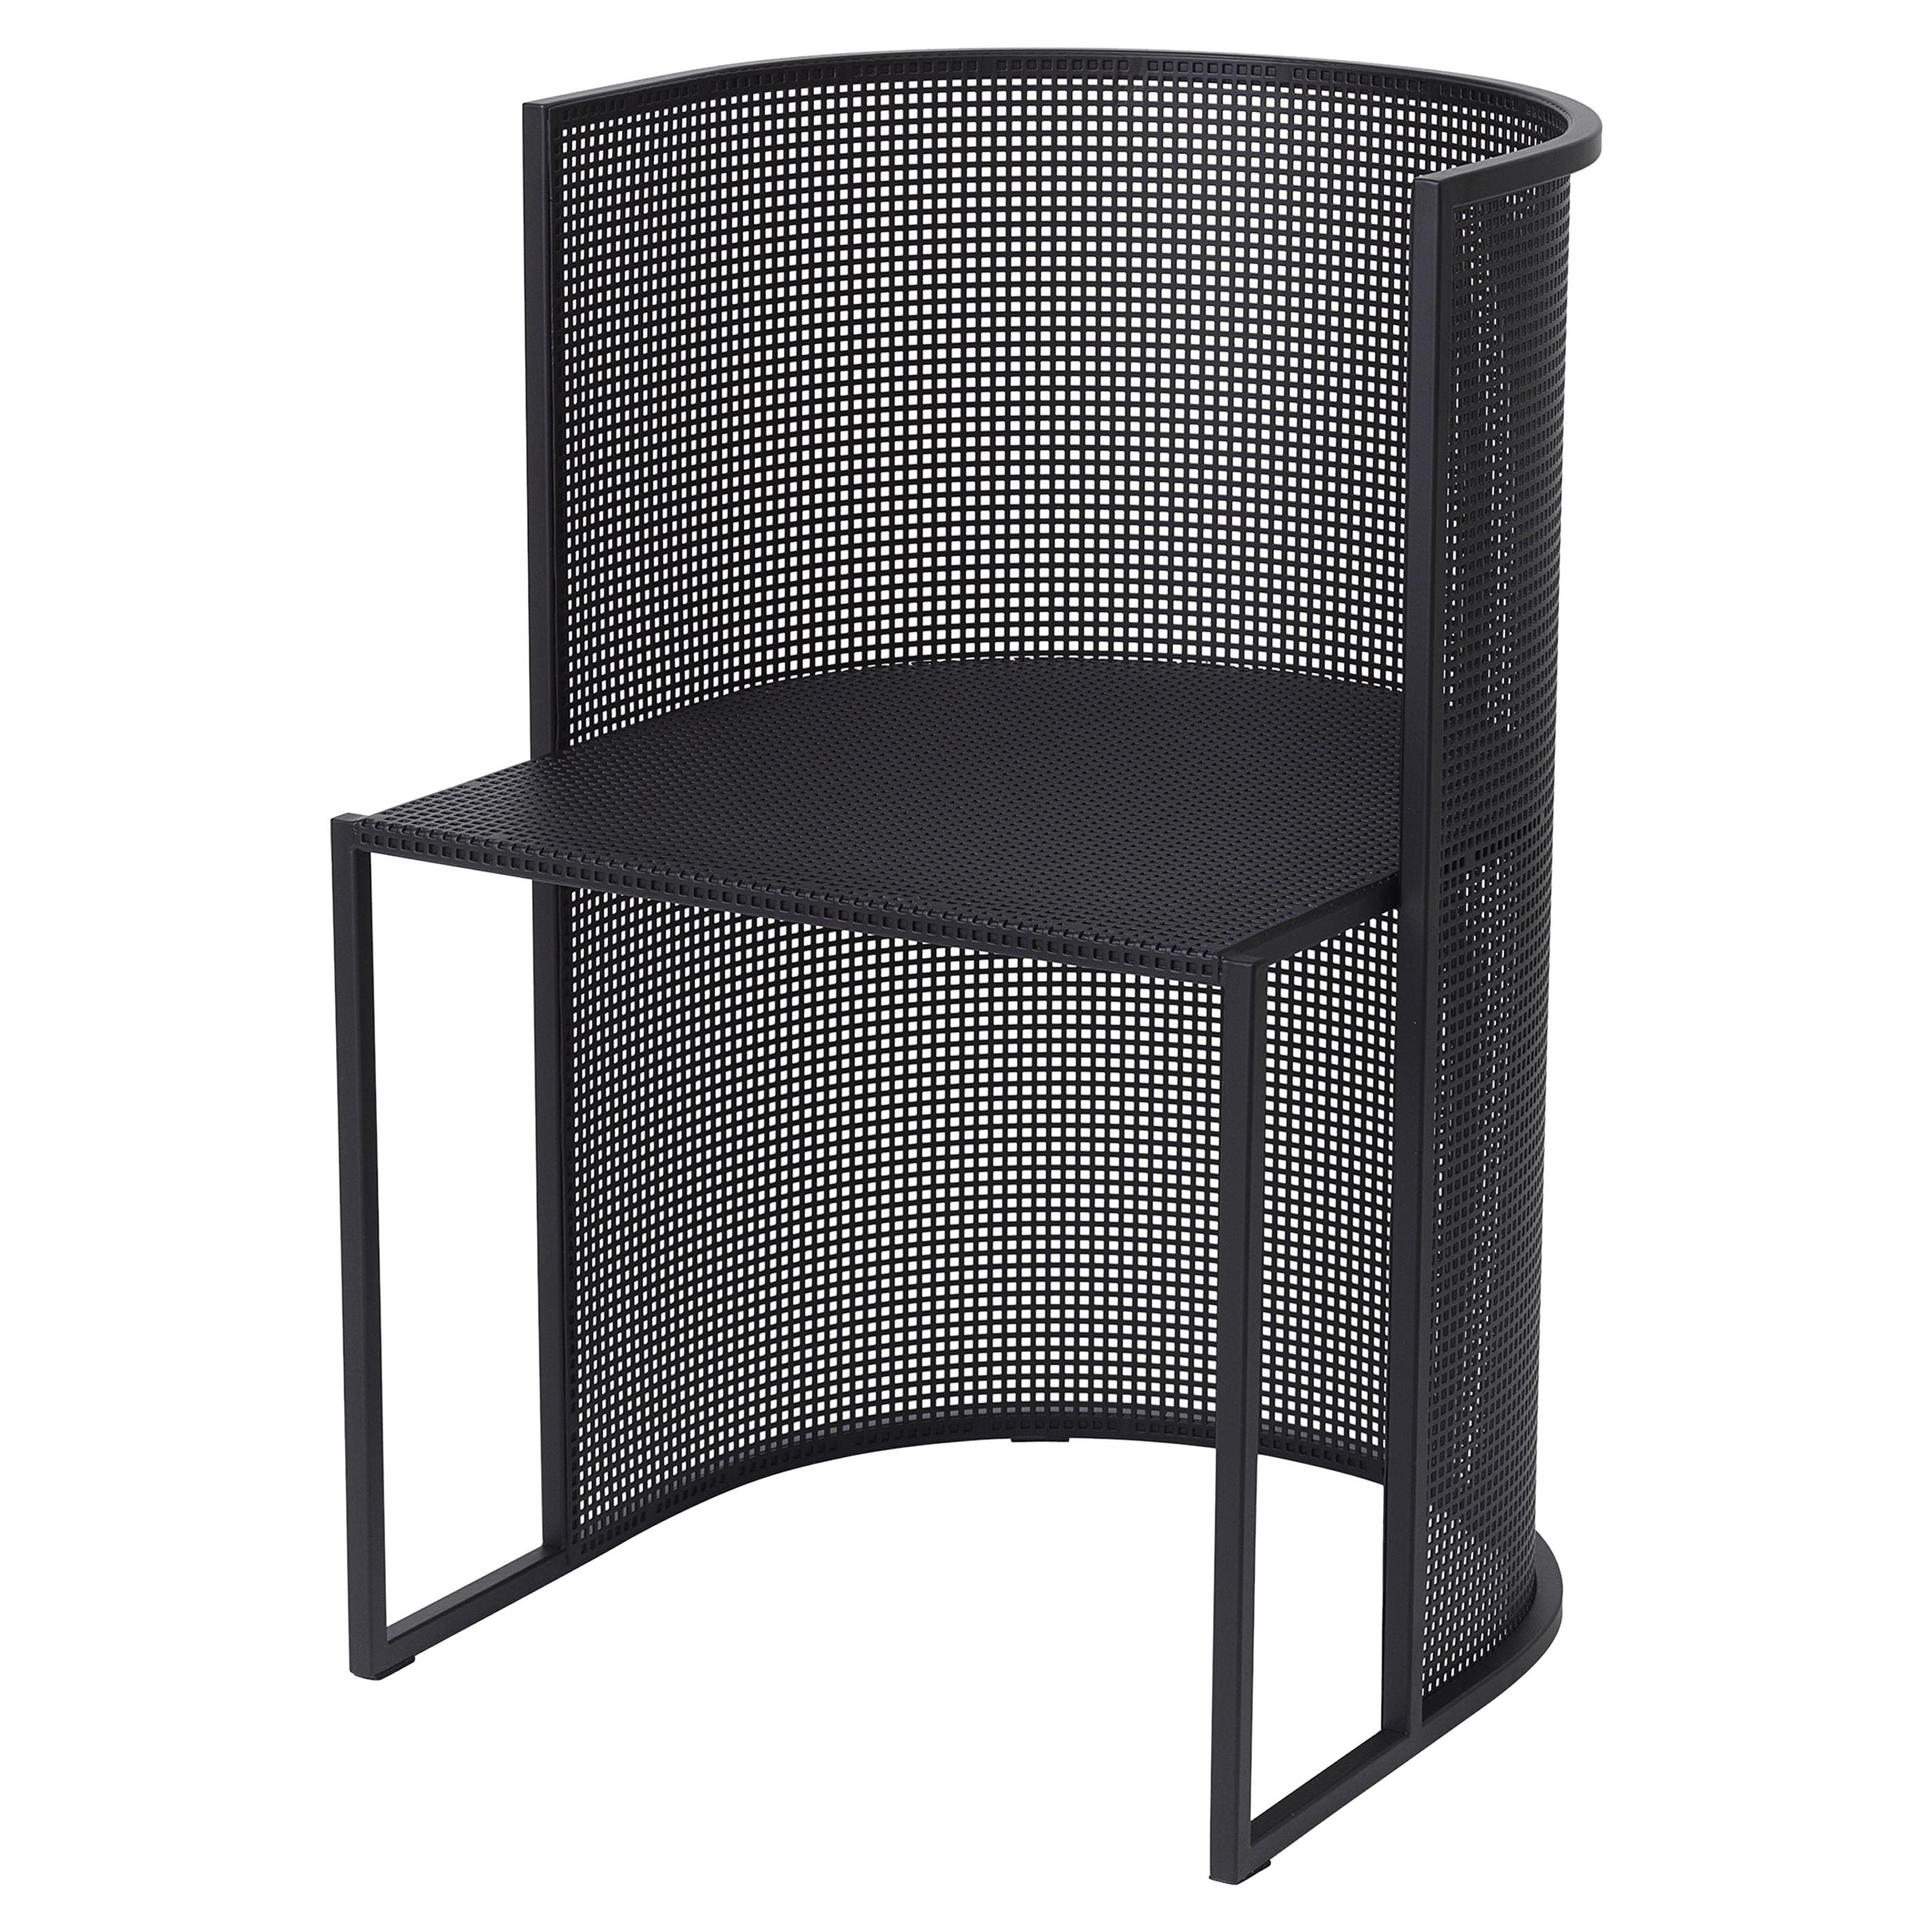 Black Steel Bahaus Dining Chair by Kristina Dam Studio